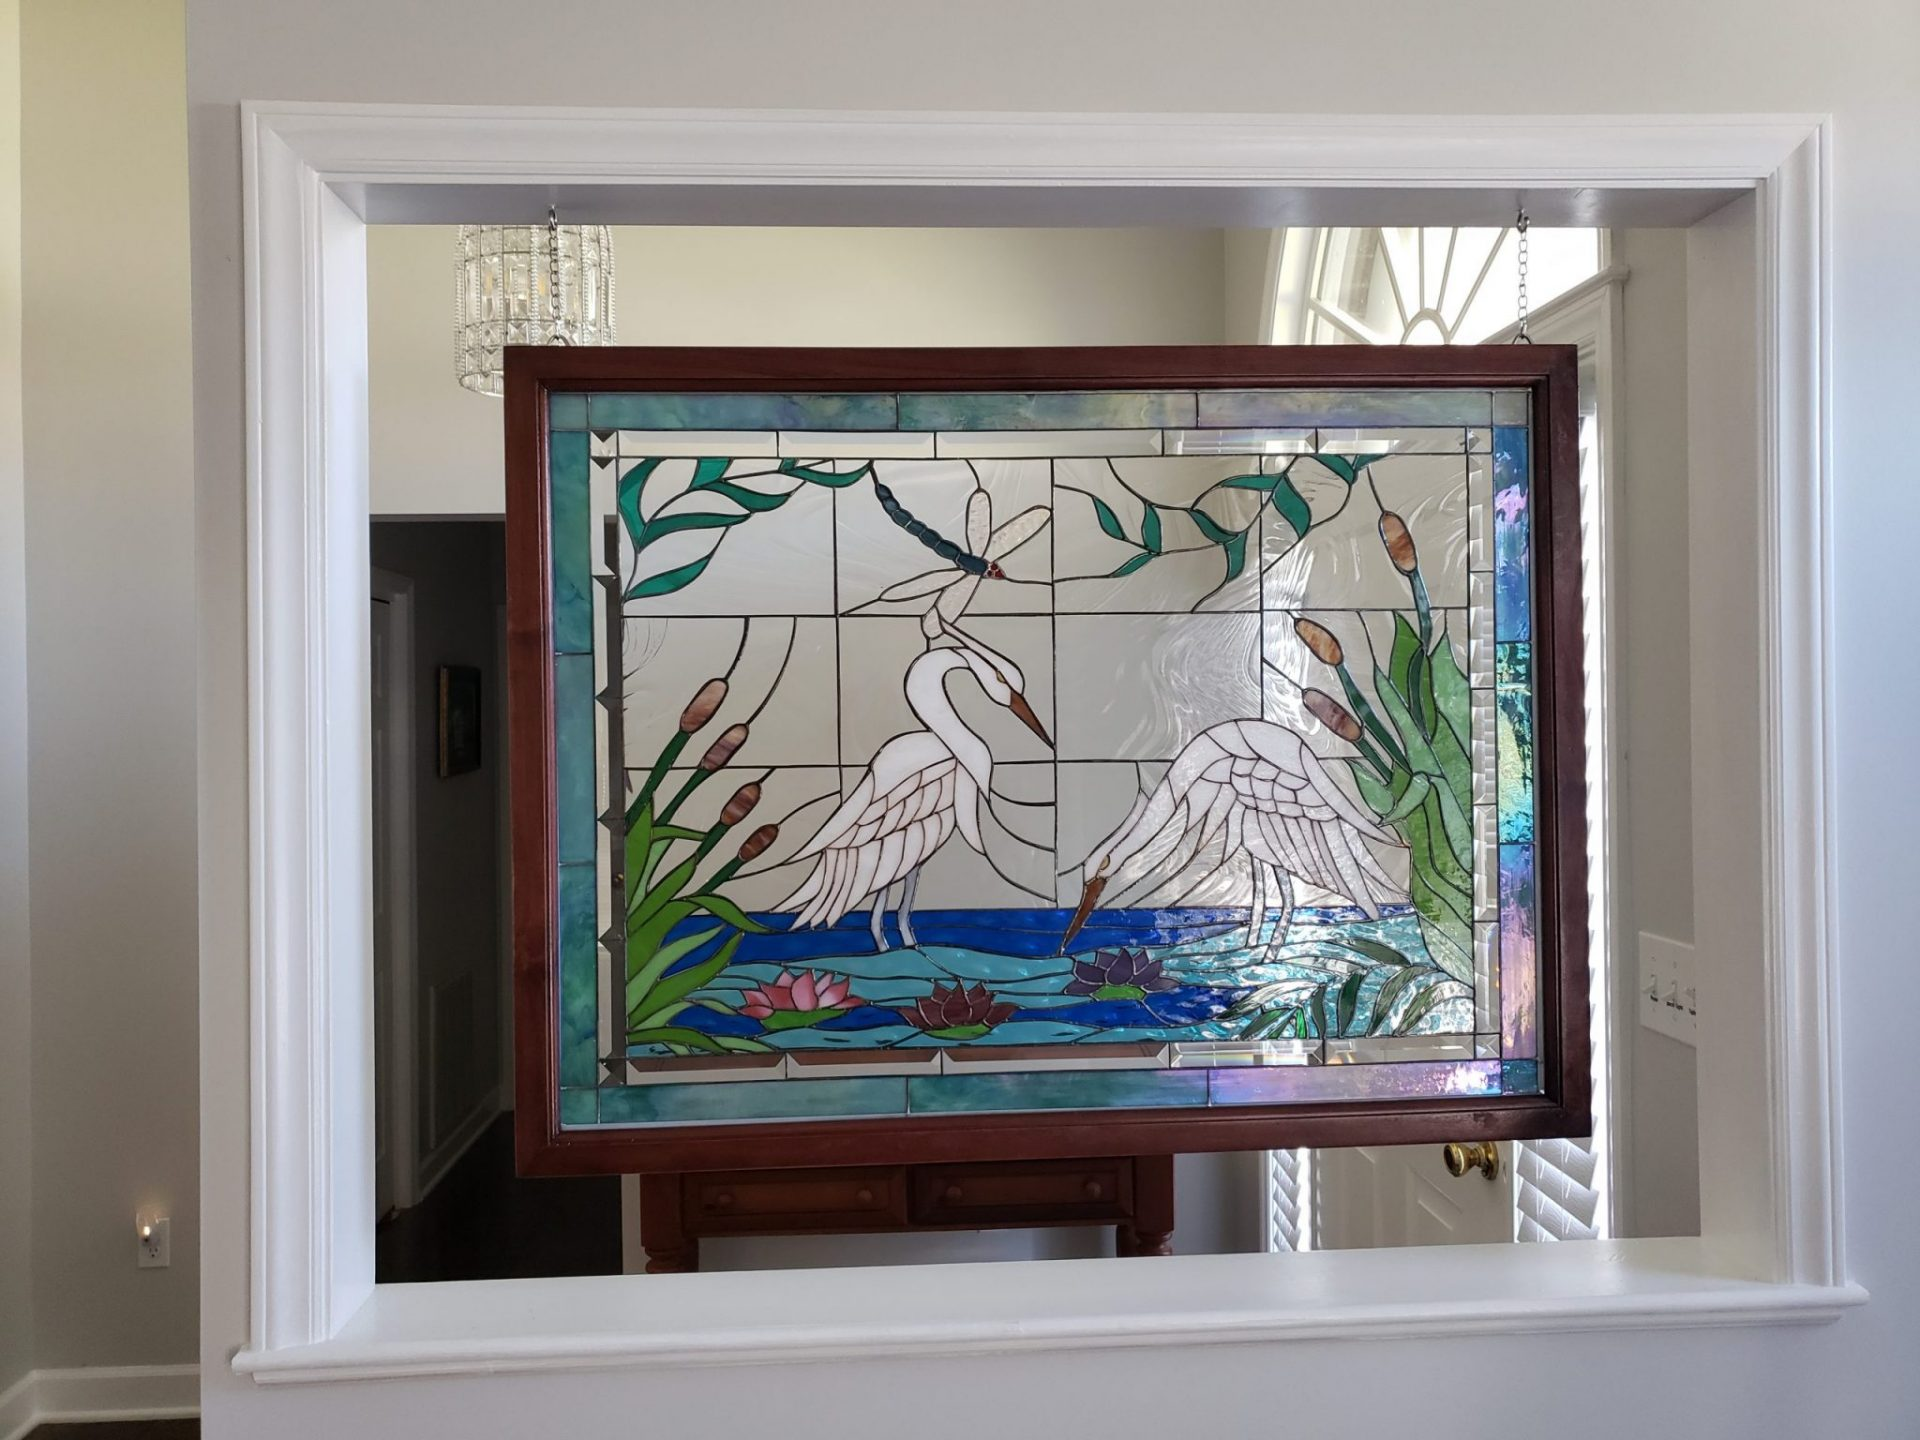 Heron design Stained Glass hang as a compliment to her entryway (after)